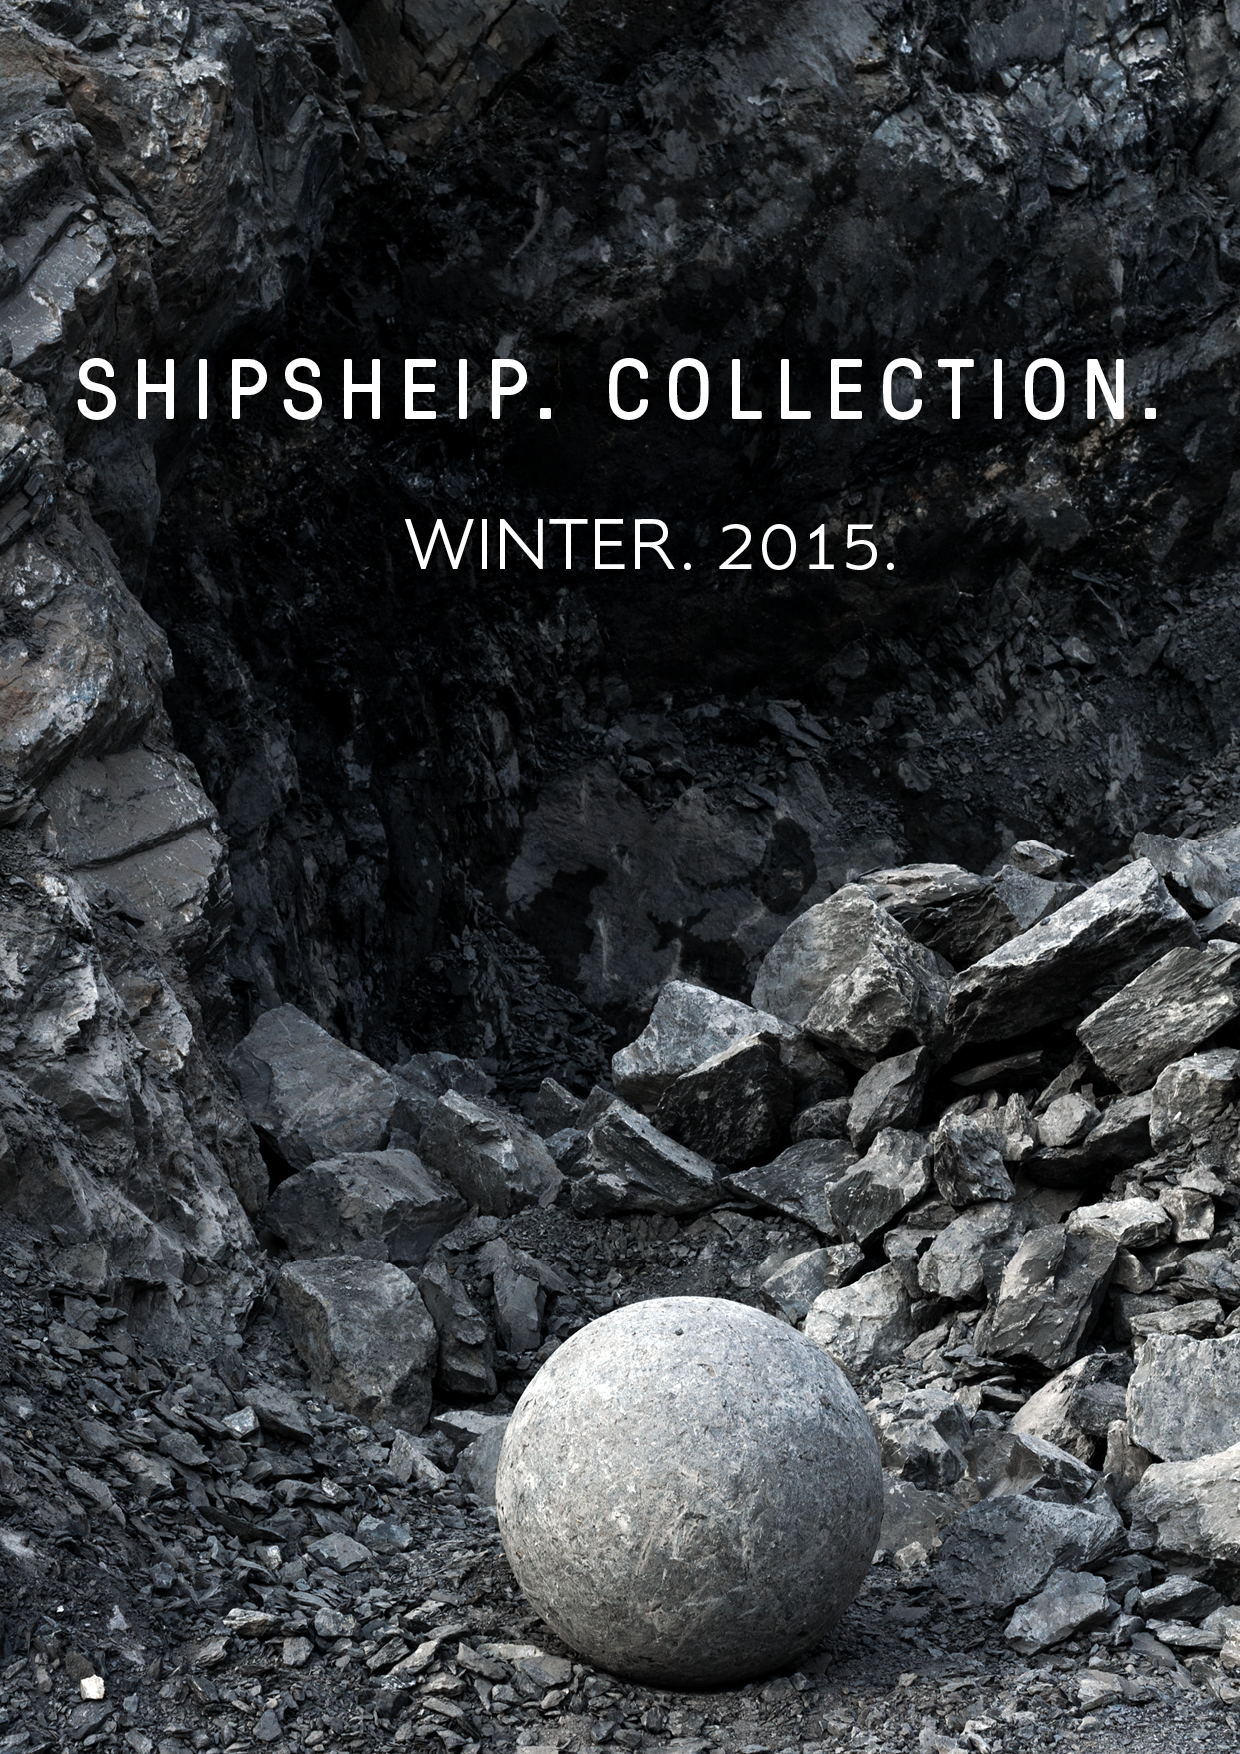 STARTSEITE_shipsheip_collection_W2015